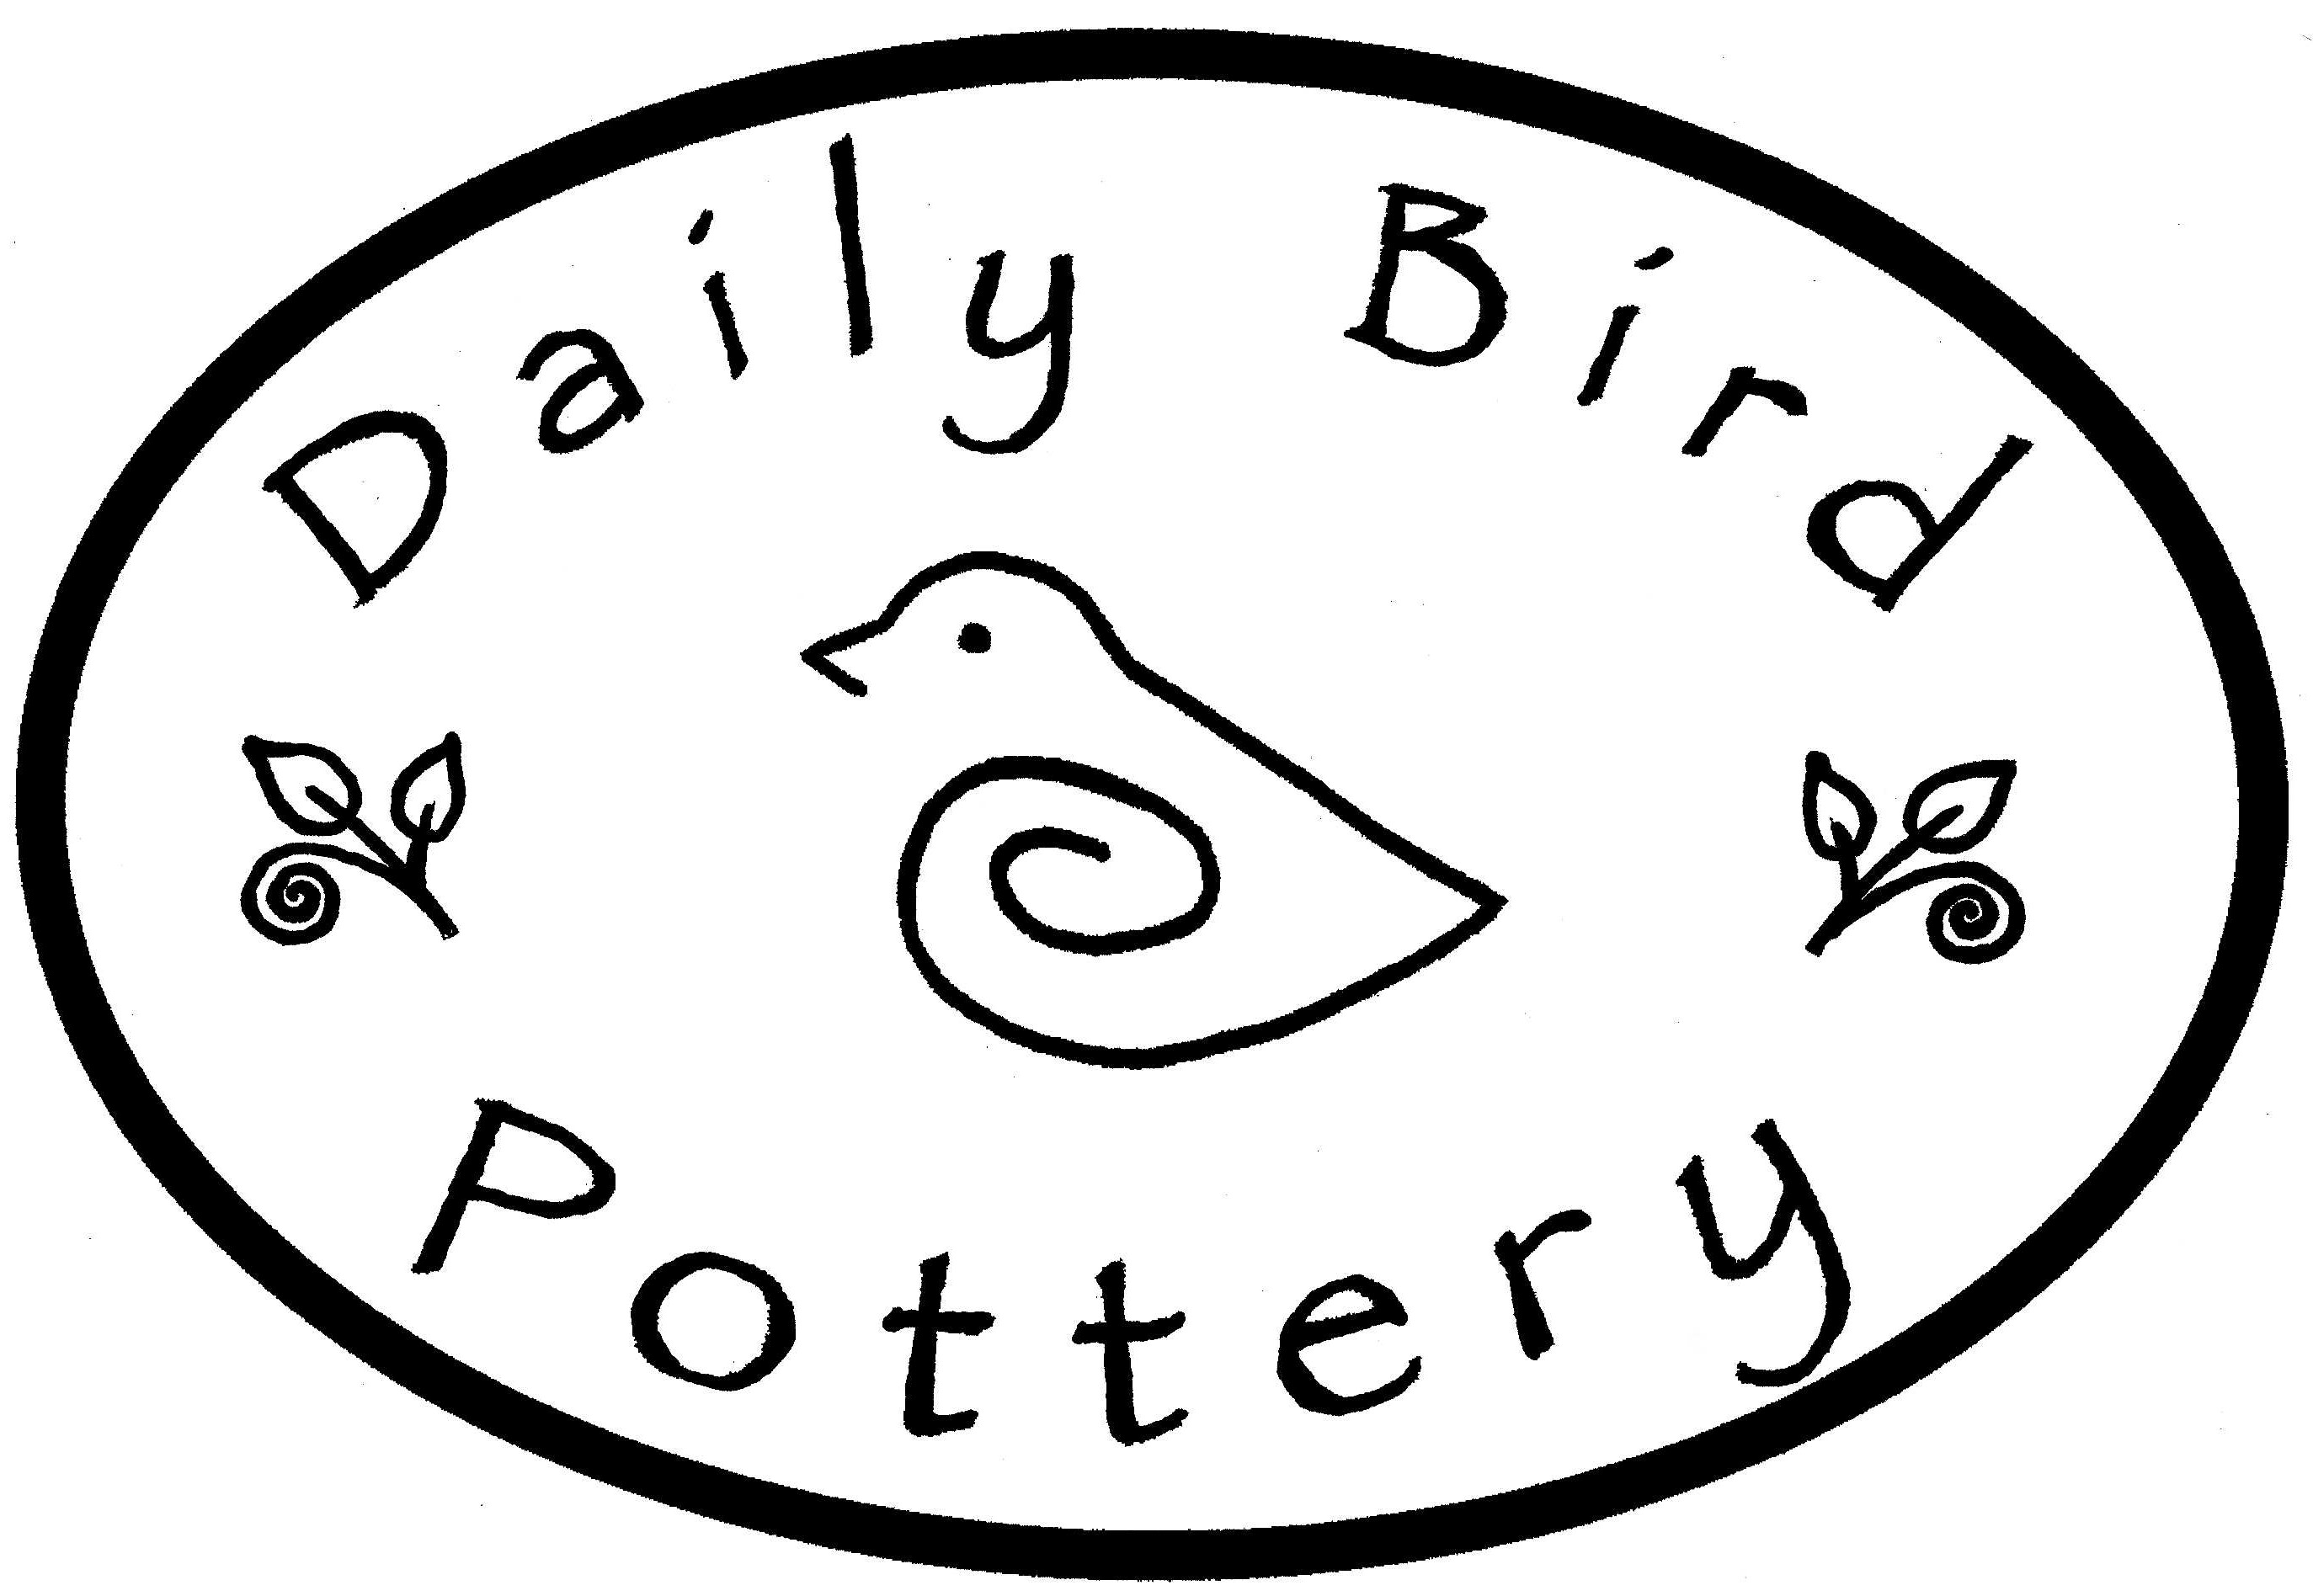 Daily Bird Pottery « Darby throws, Phoebe sculpts, a work